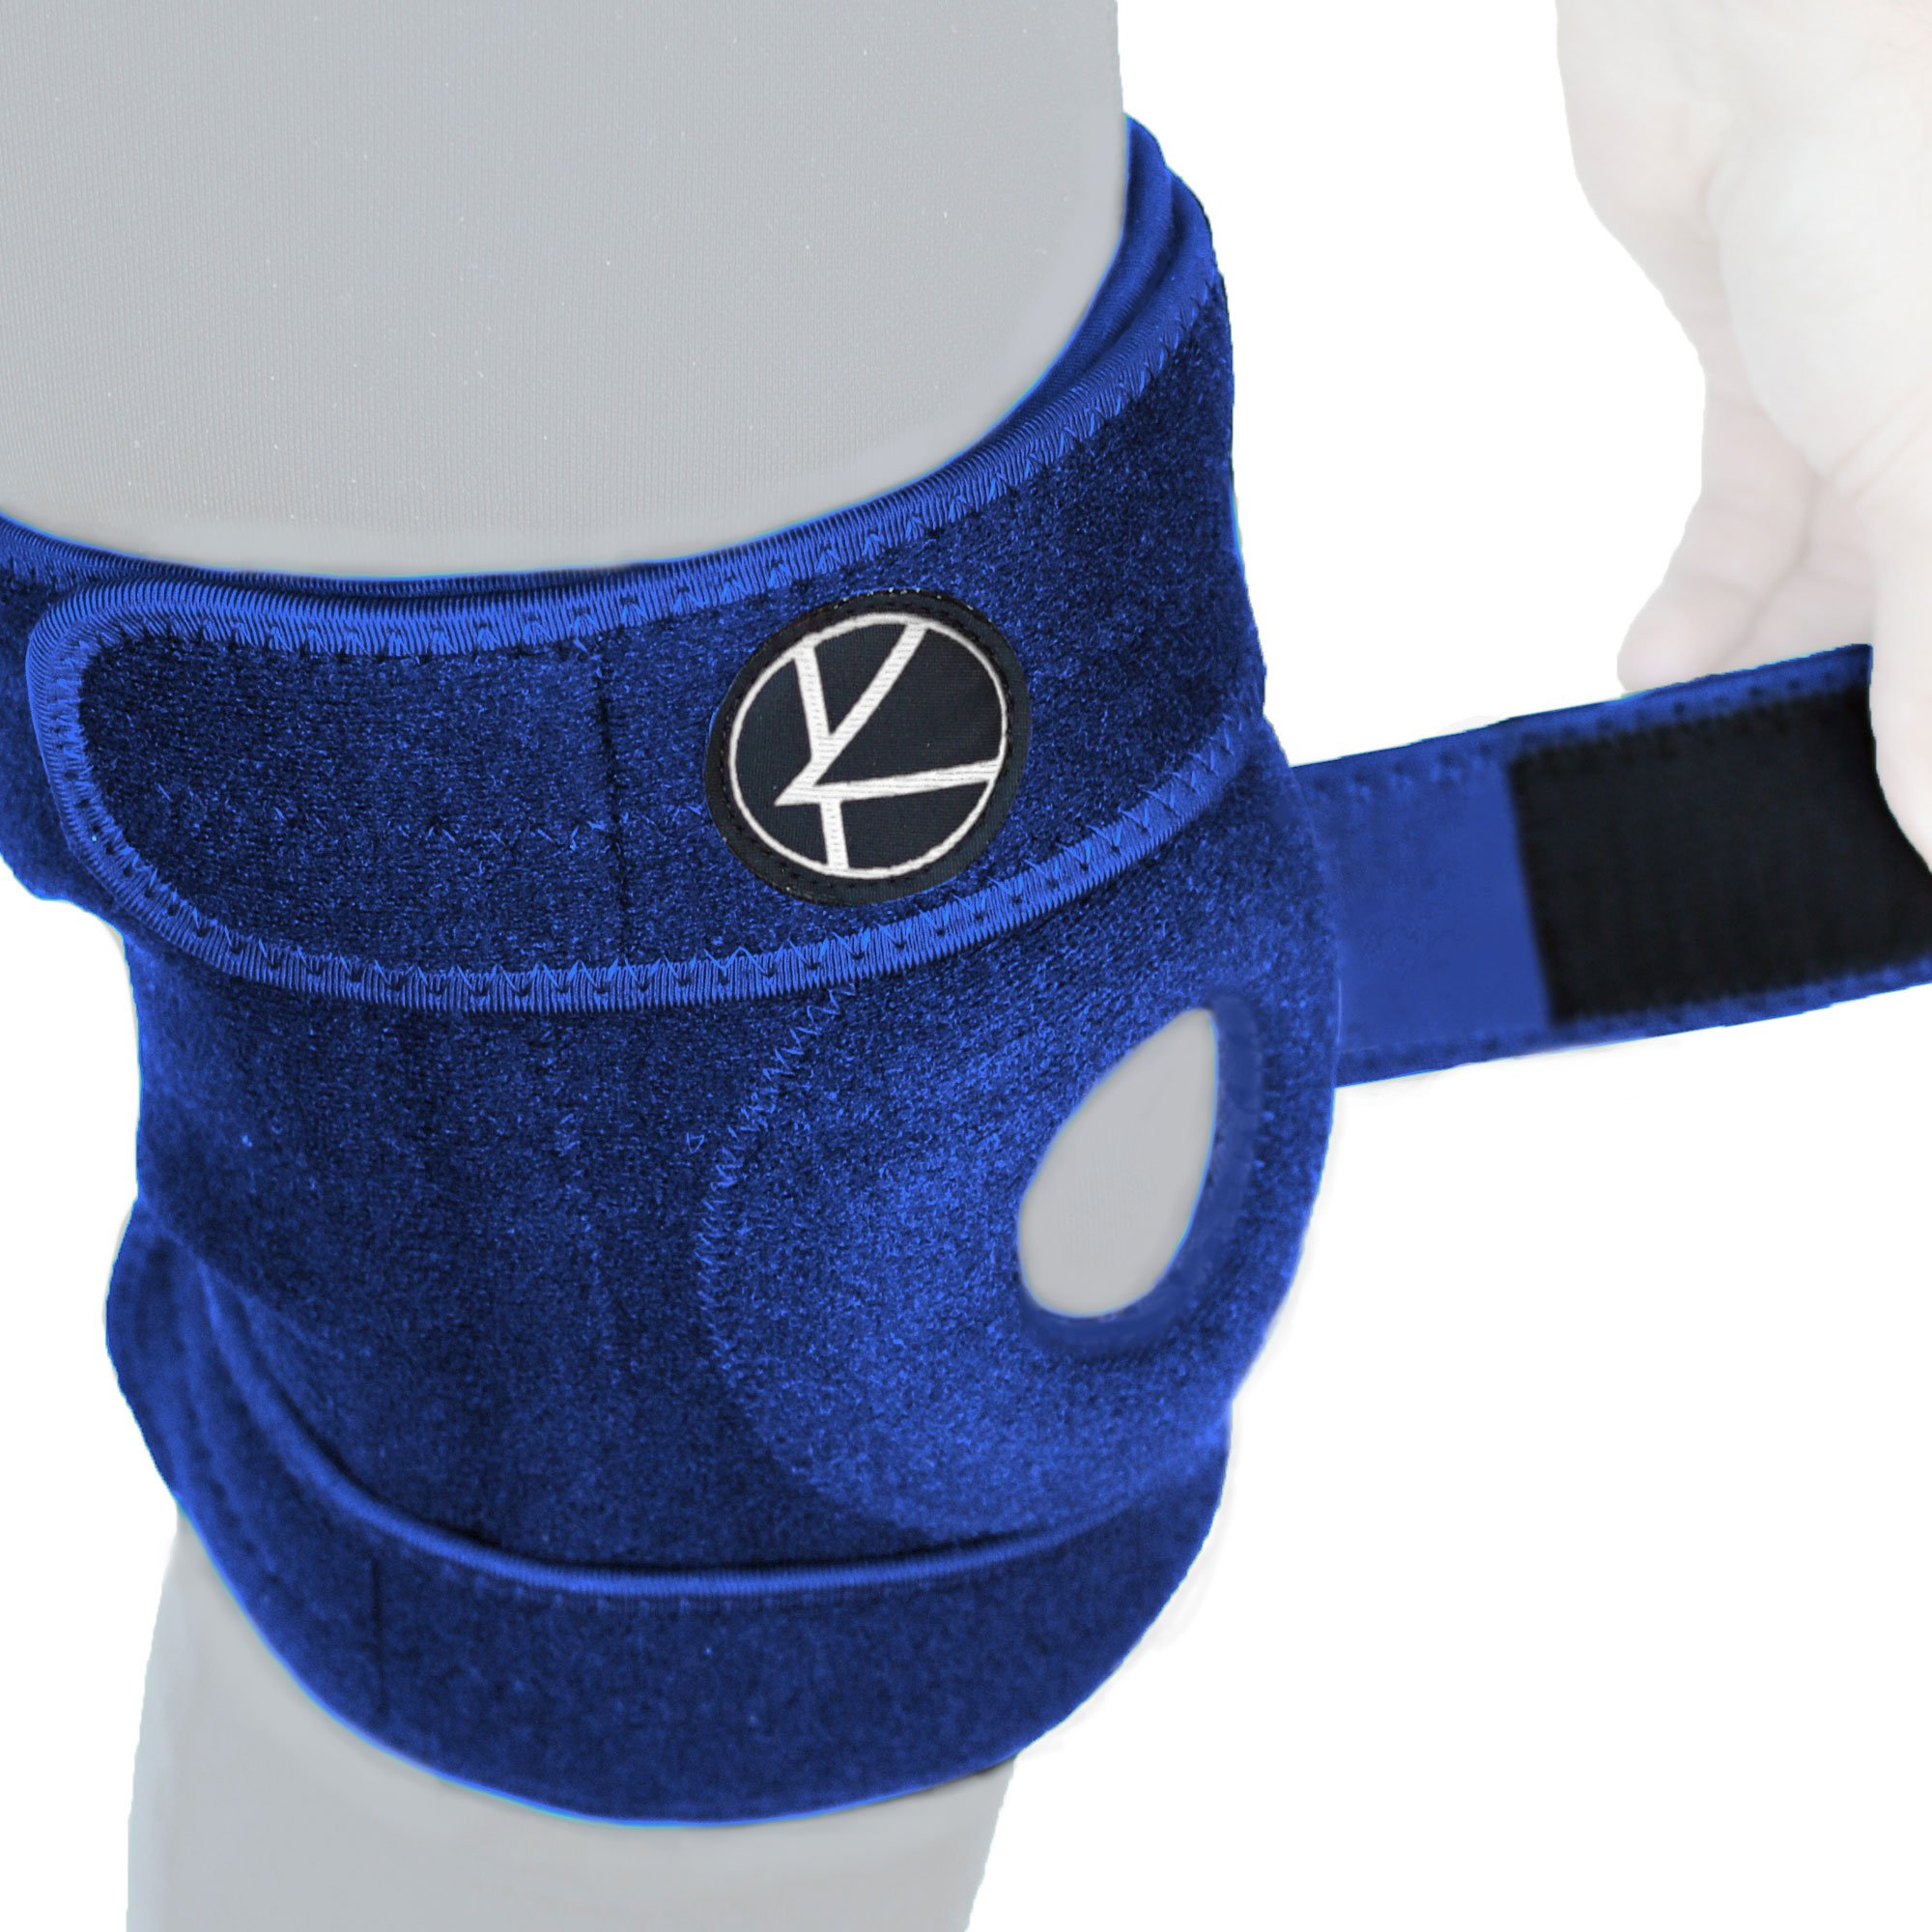 Adjustable Knee Brace Support for Arthritis, ACL, MCL, LCL, Sports Exercise, Meniscus Tear, Injury Recovery, Pain Relief, Walking – Open Patella Neoprene Stabilizer Wrap for Women, Men, Kids(Size 1)